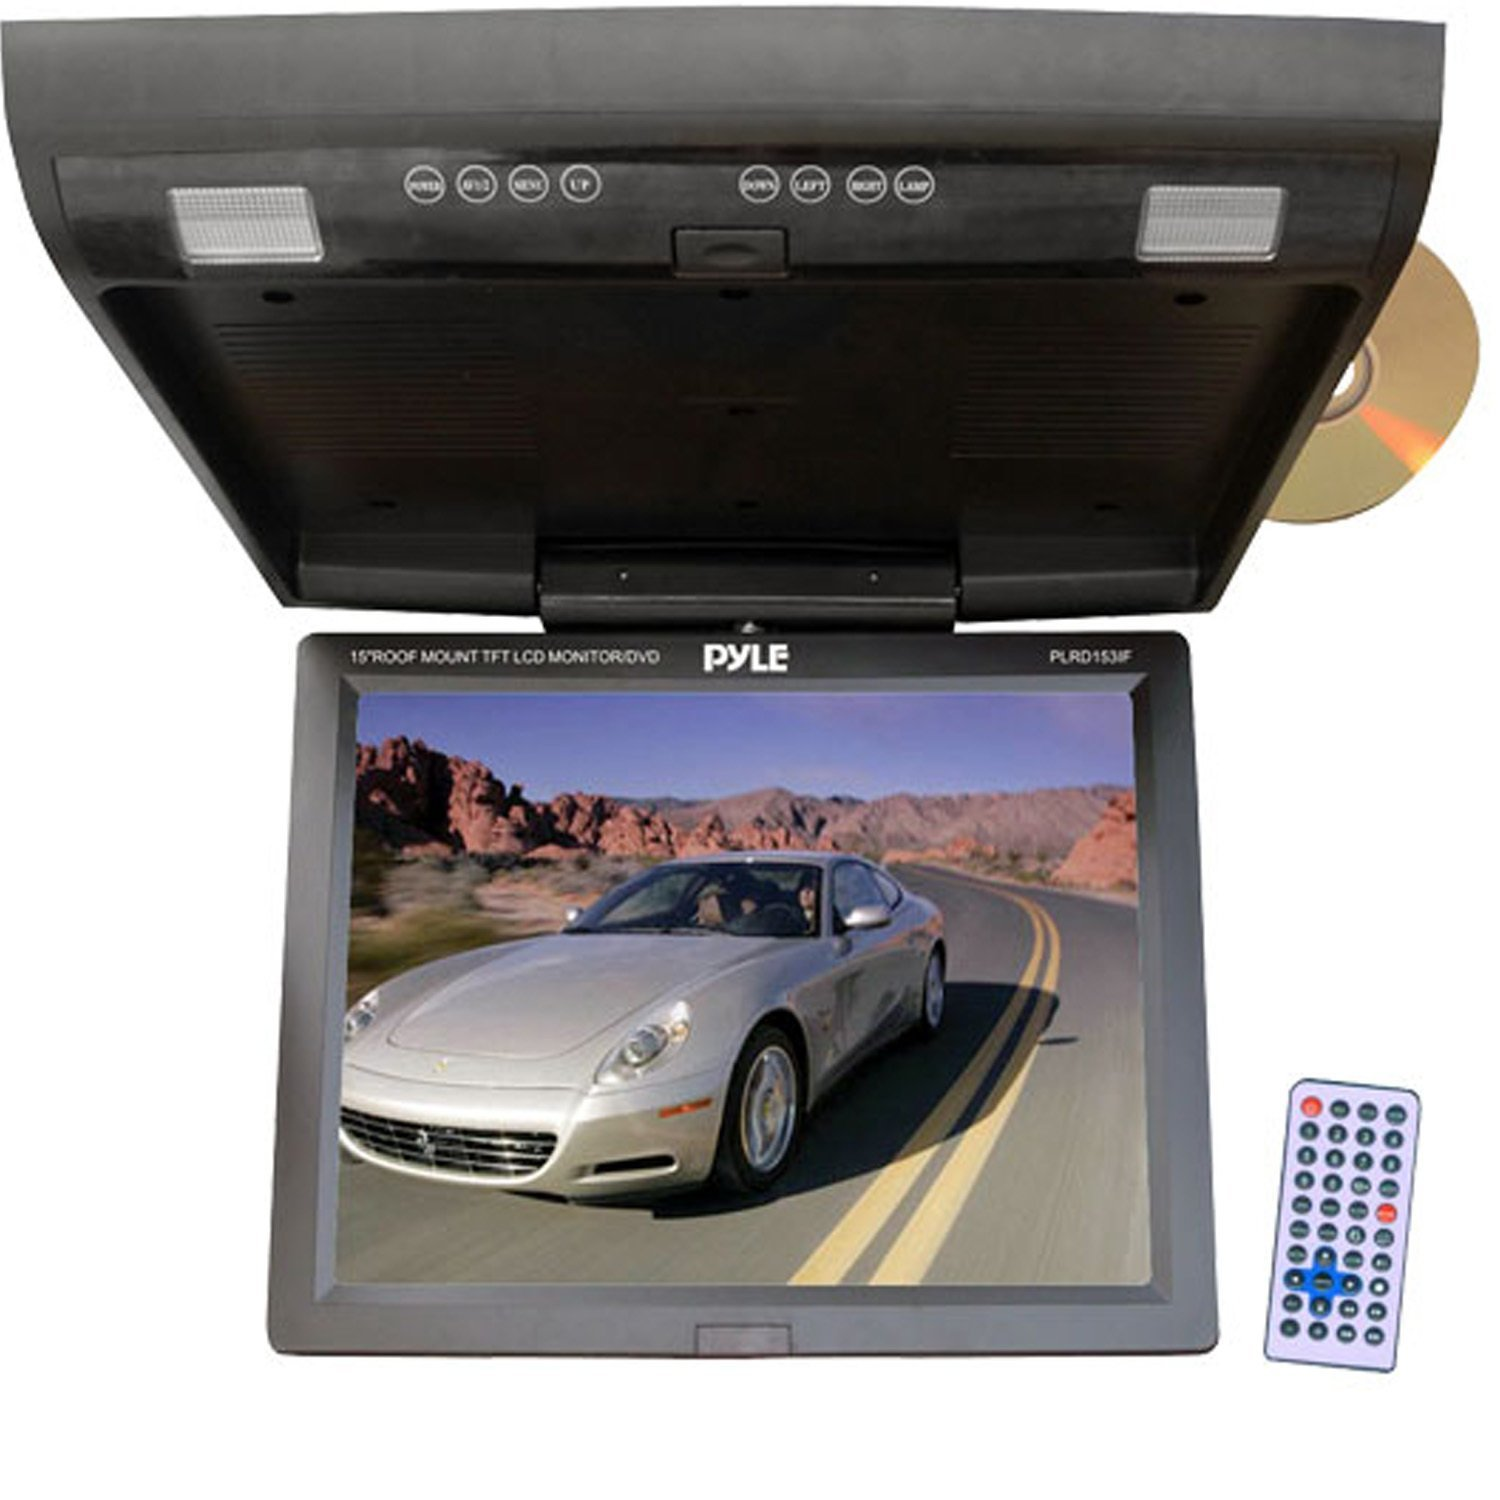 Cheap Pyle Dvd, find Pyle Dvd deals on line at Alibaba.com on pyle speaker, pyle receiver wiring, pyle plmpa35 wiring guide, dual car stereo wire harness, pyle pldnv695 wiring diagrams,